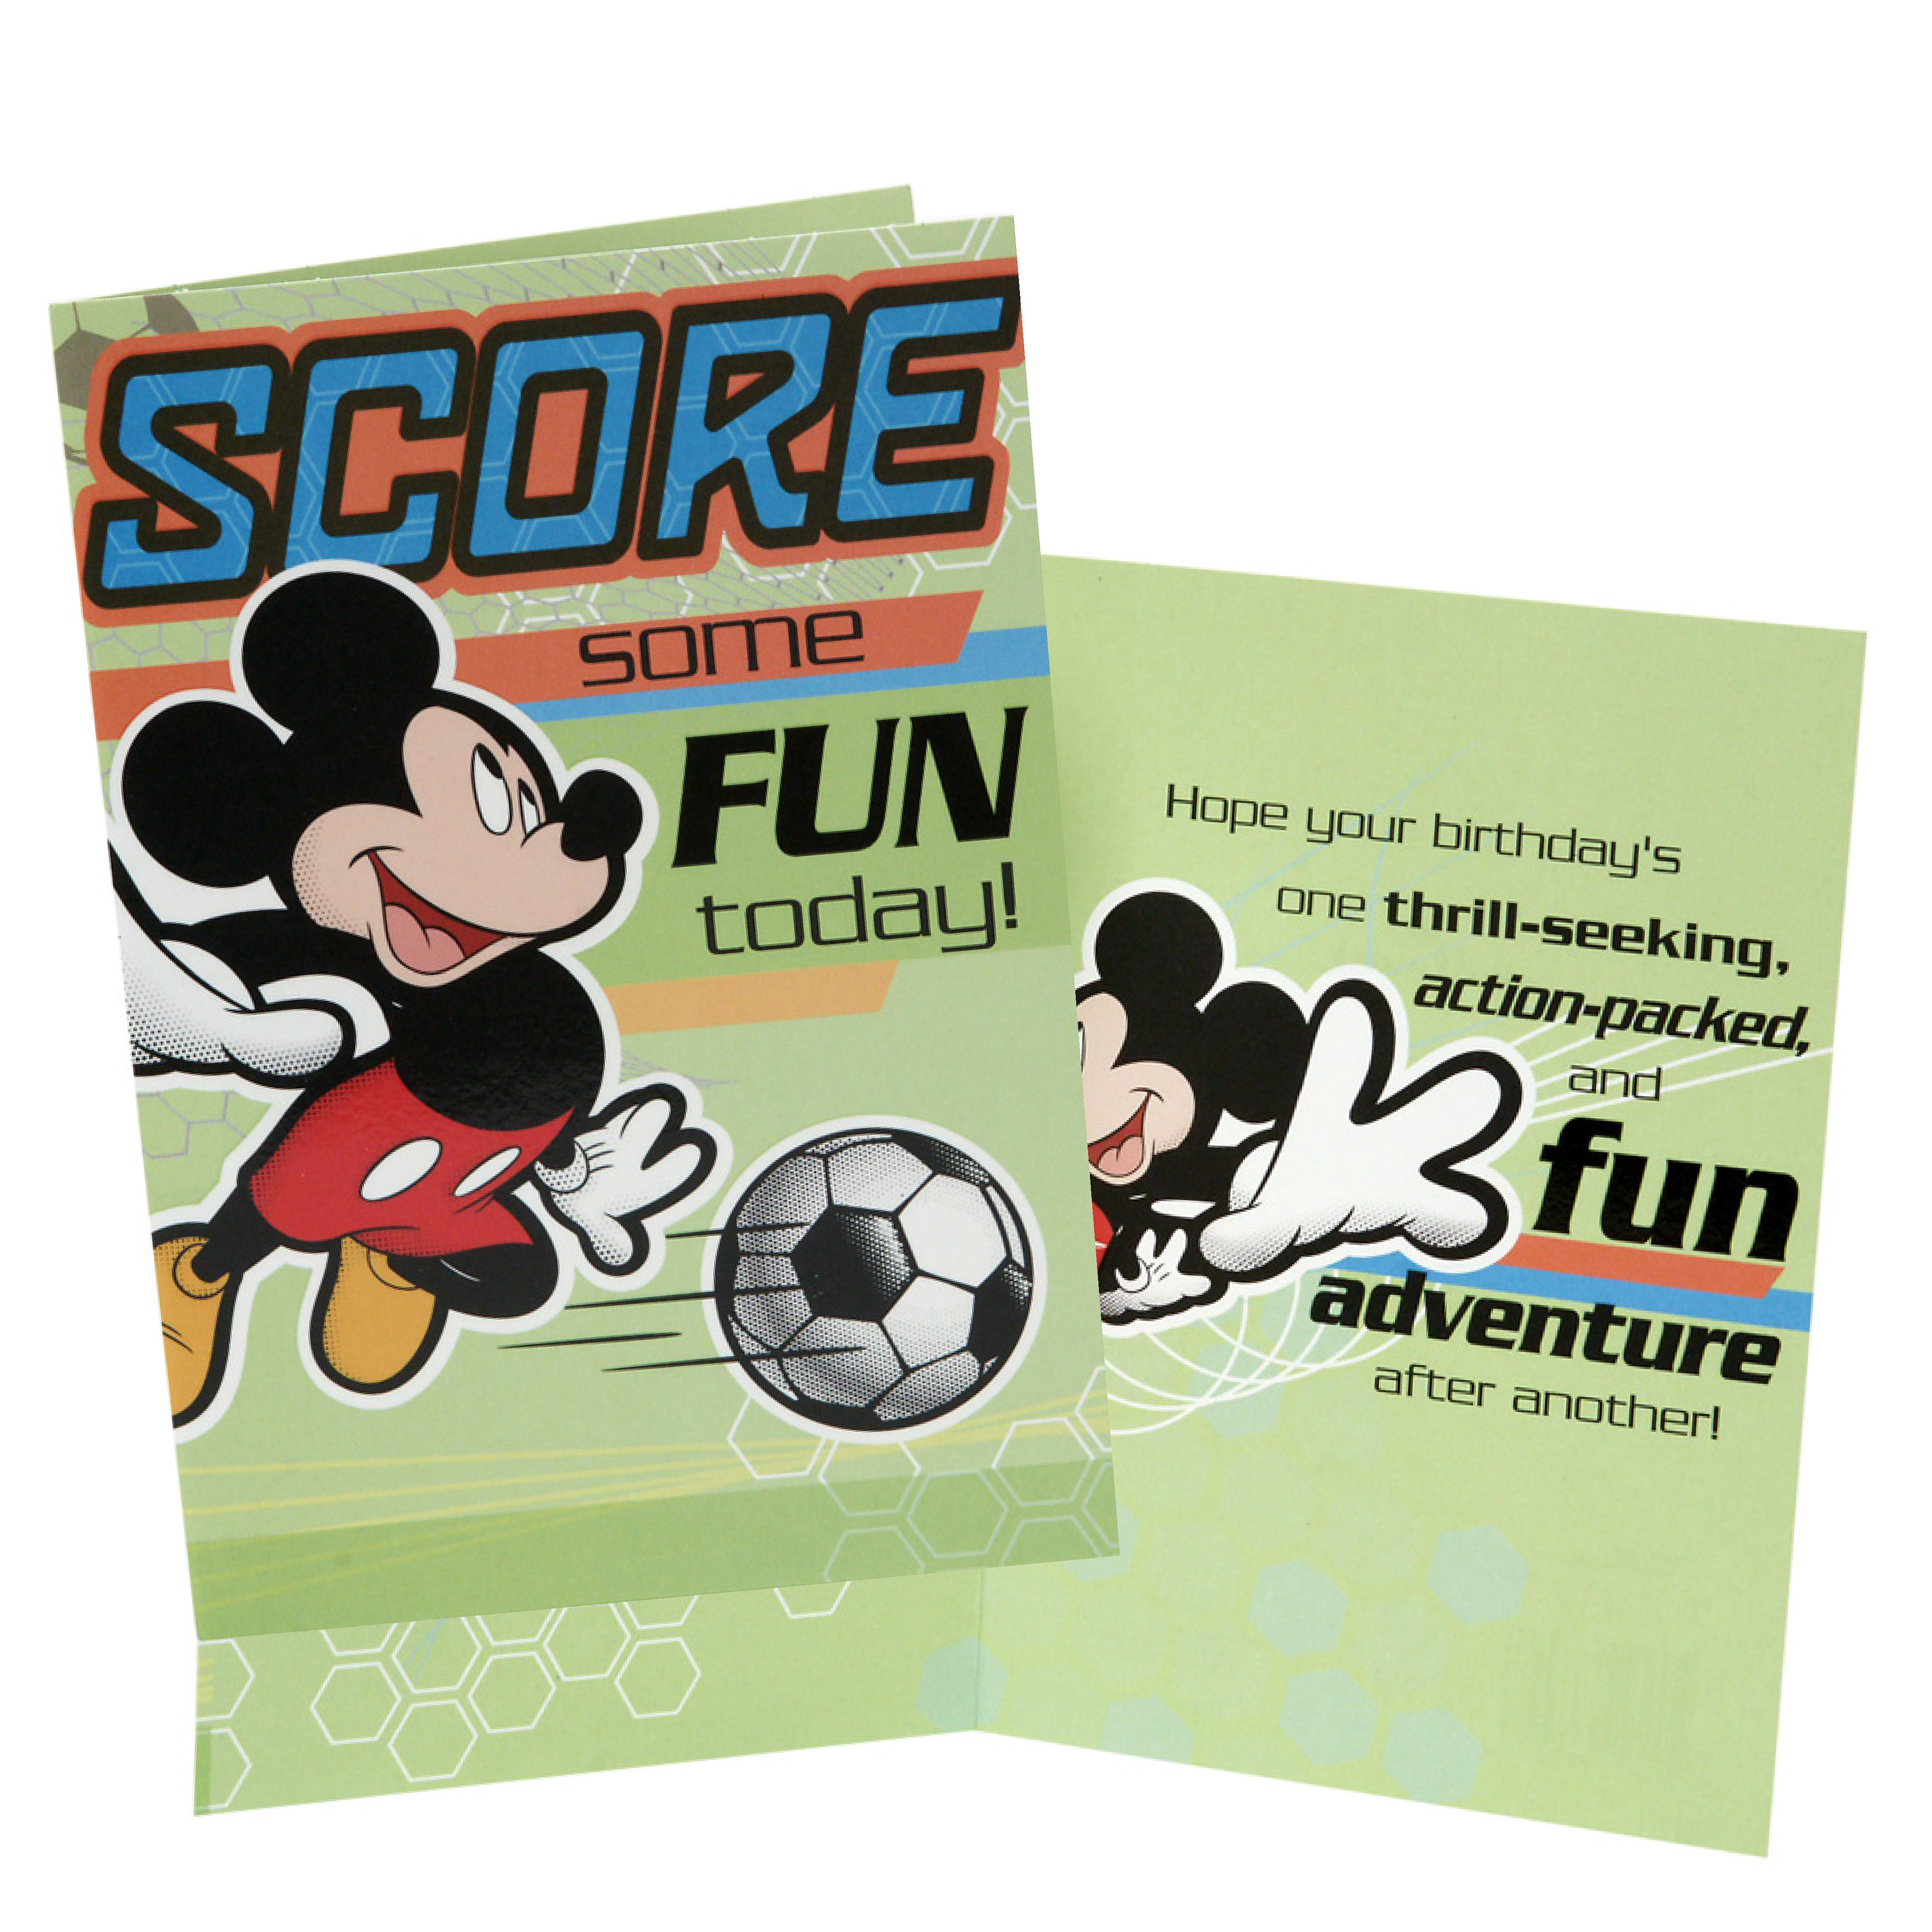 Hallmark Birthday Card for Boy - Soccer Mickey Mouse